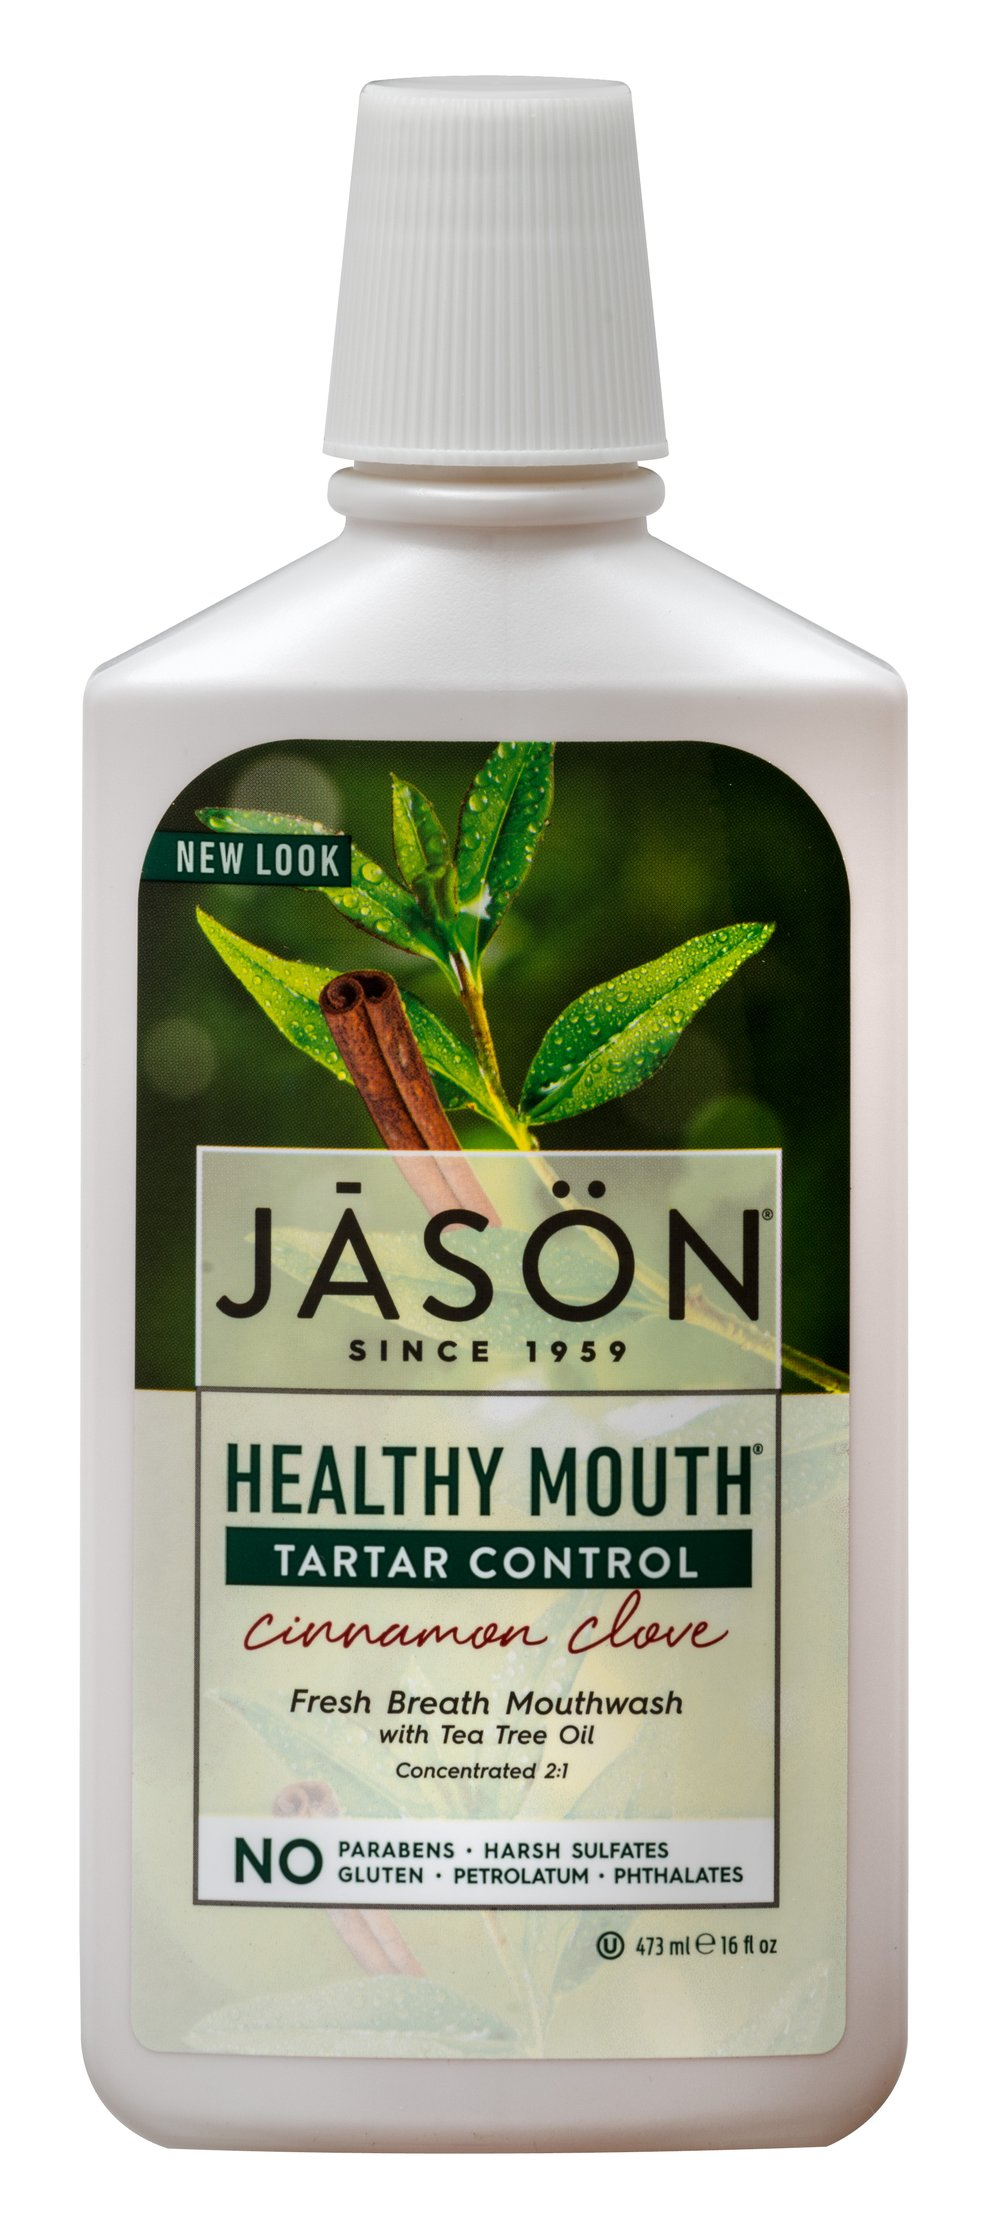 Jason® Healthy Mouth® Tea Tree & Cinnamon Mouthwash <p><b>From the Manufacturer:</b></p>  <p>Freshens your breath and keep your Mouth Healthy, without harsh abrasives or irritating chemicals</p>  <p>Concentrated 2:1</p>  If reduced intensity is desired, dilute one part mouthwash with one part water before use.  <p>Certified Organic Tea Tree Oil and Aloe Vera Gel</p> <p>Natural Clove & Cinnamon Oils</p> <